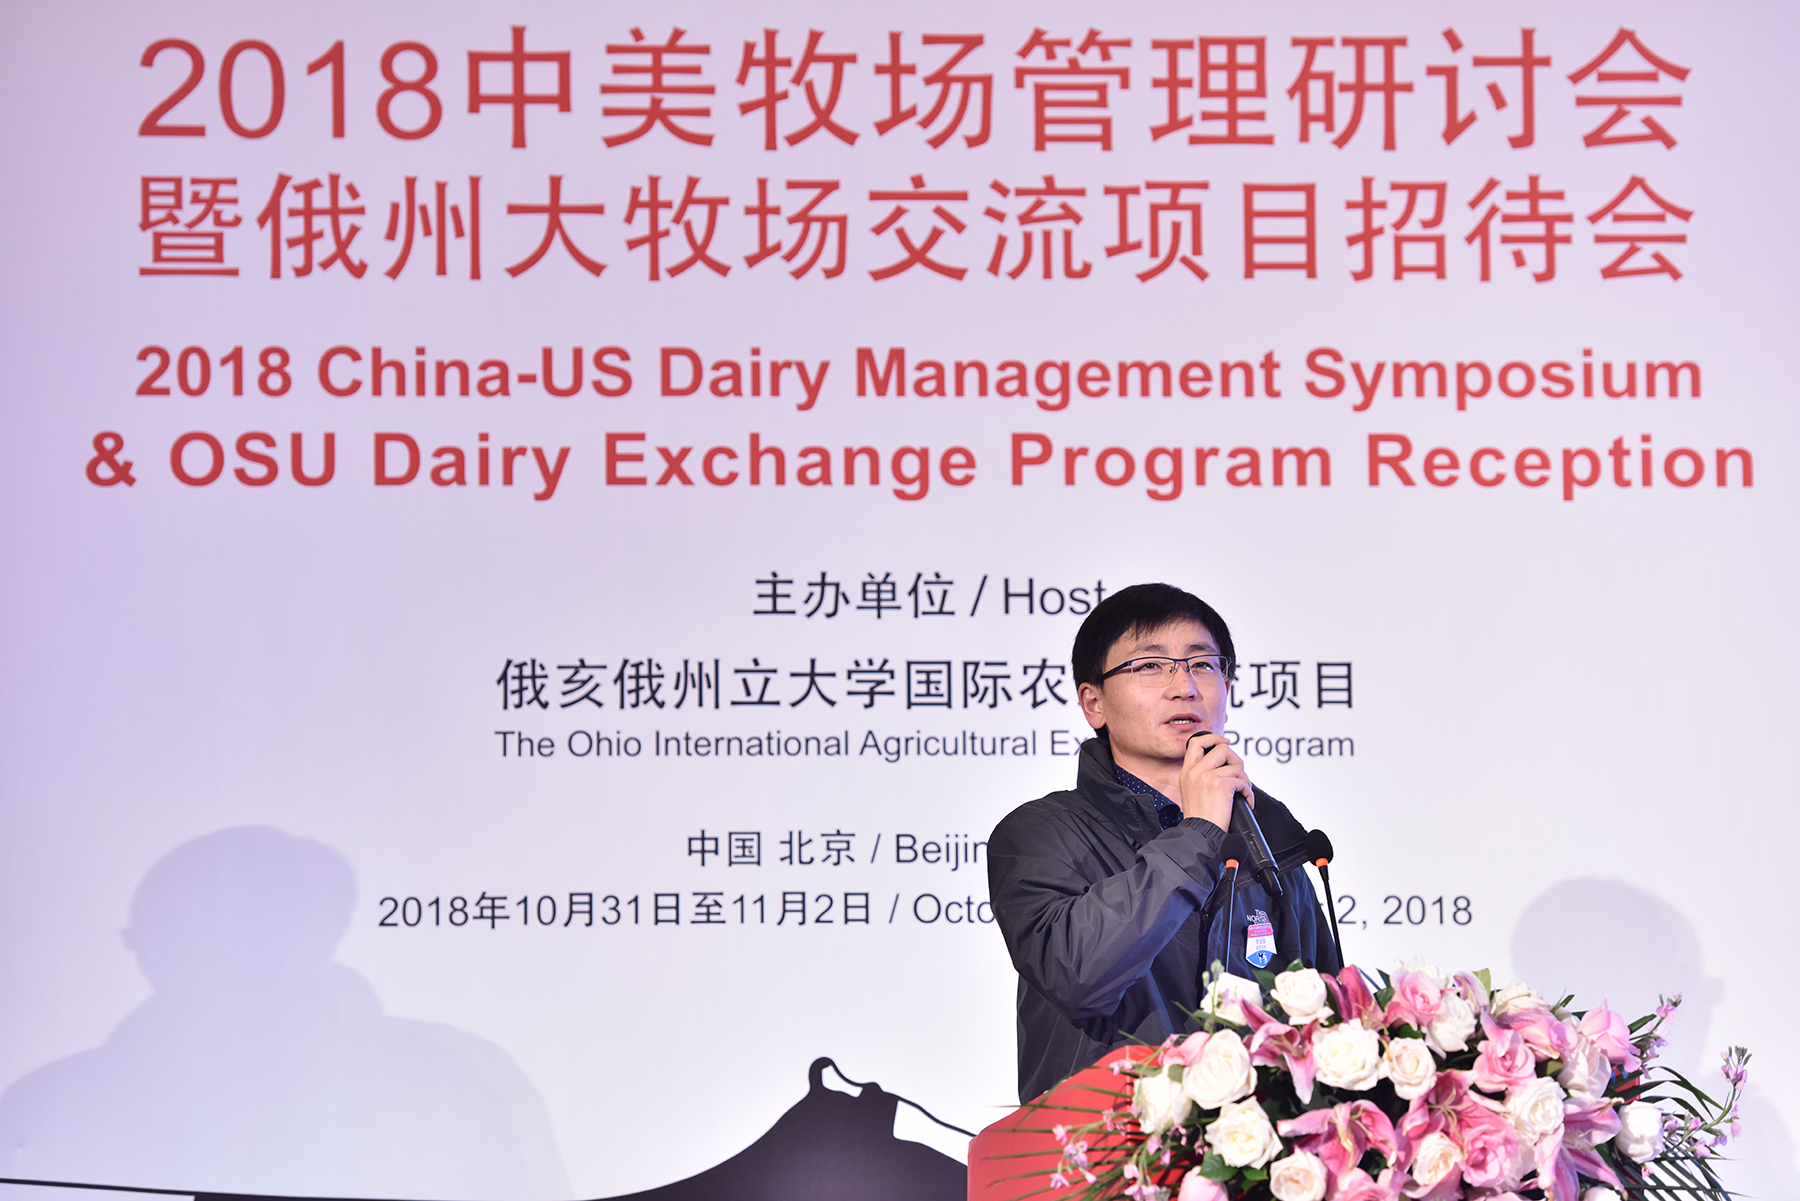 Dairy Farm Managers Forum